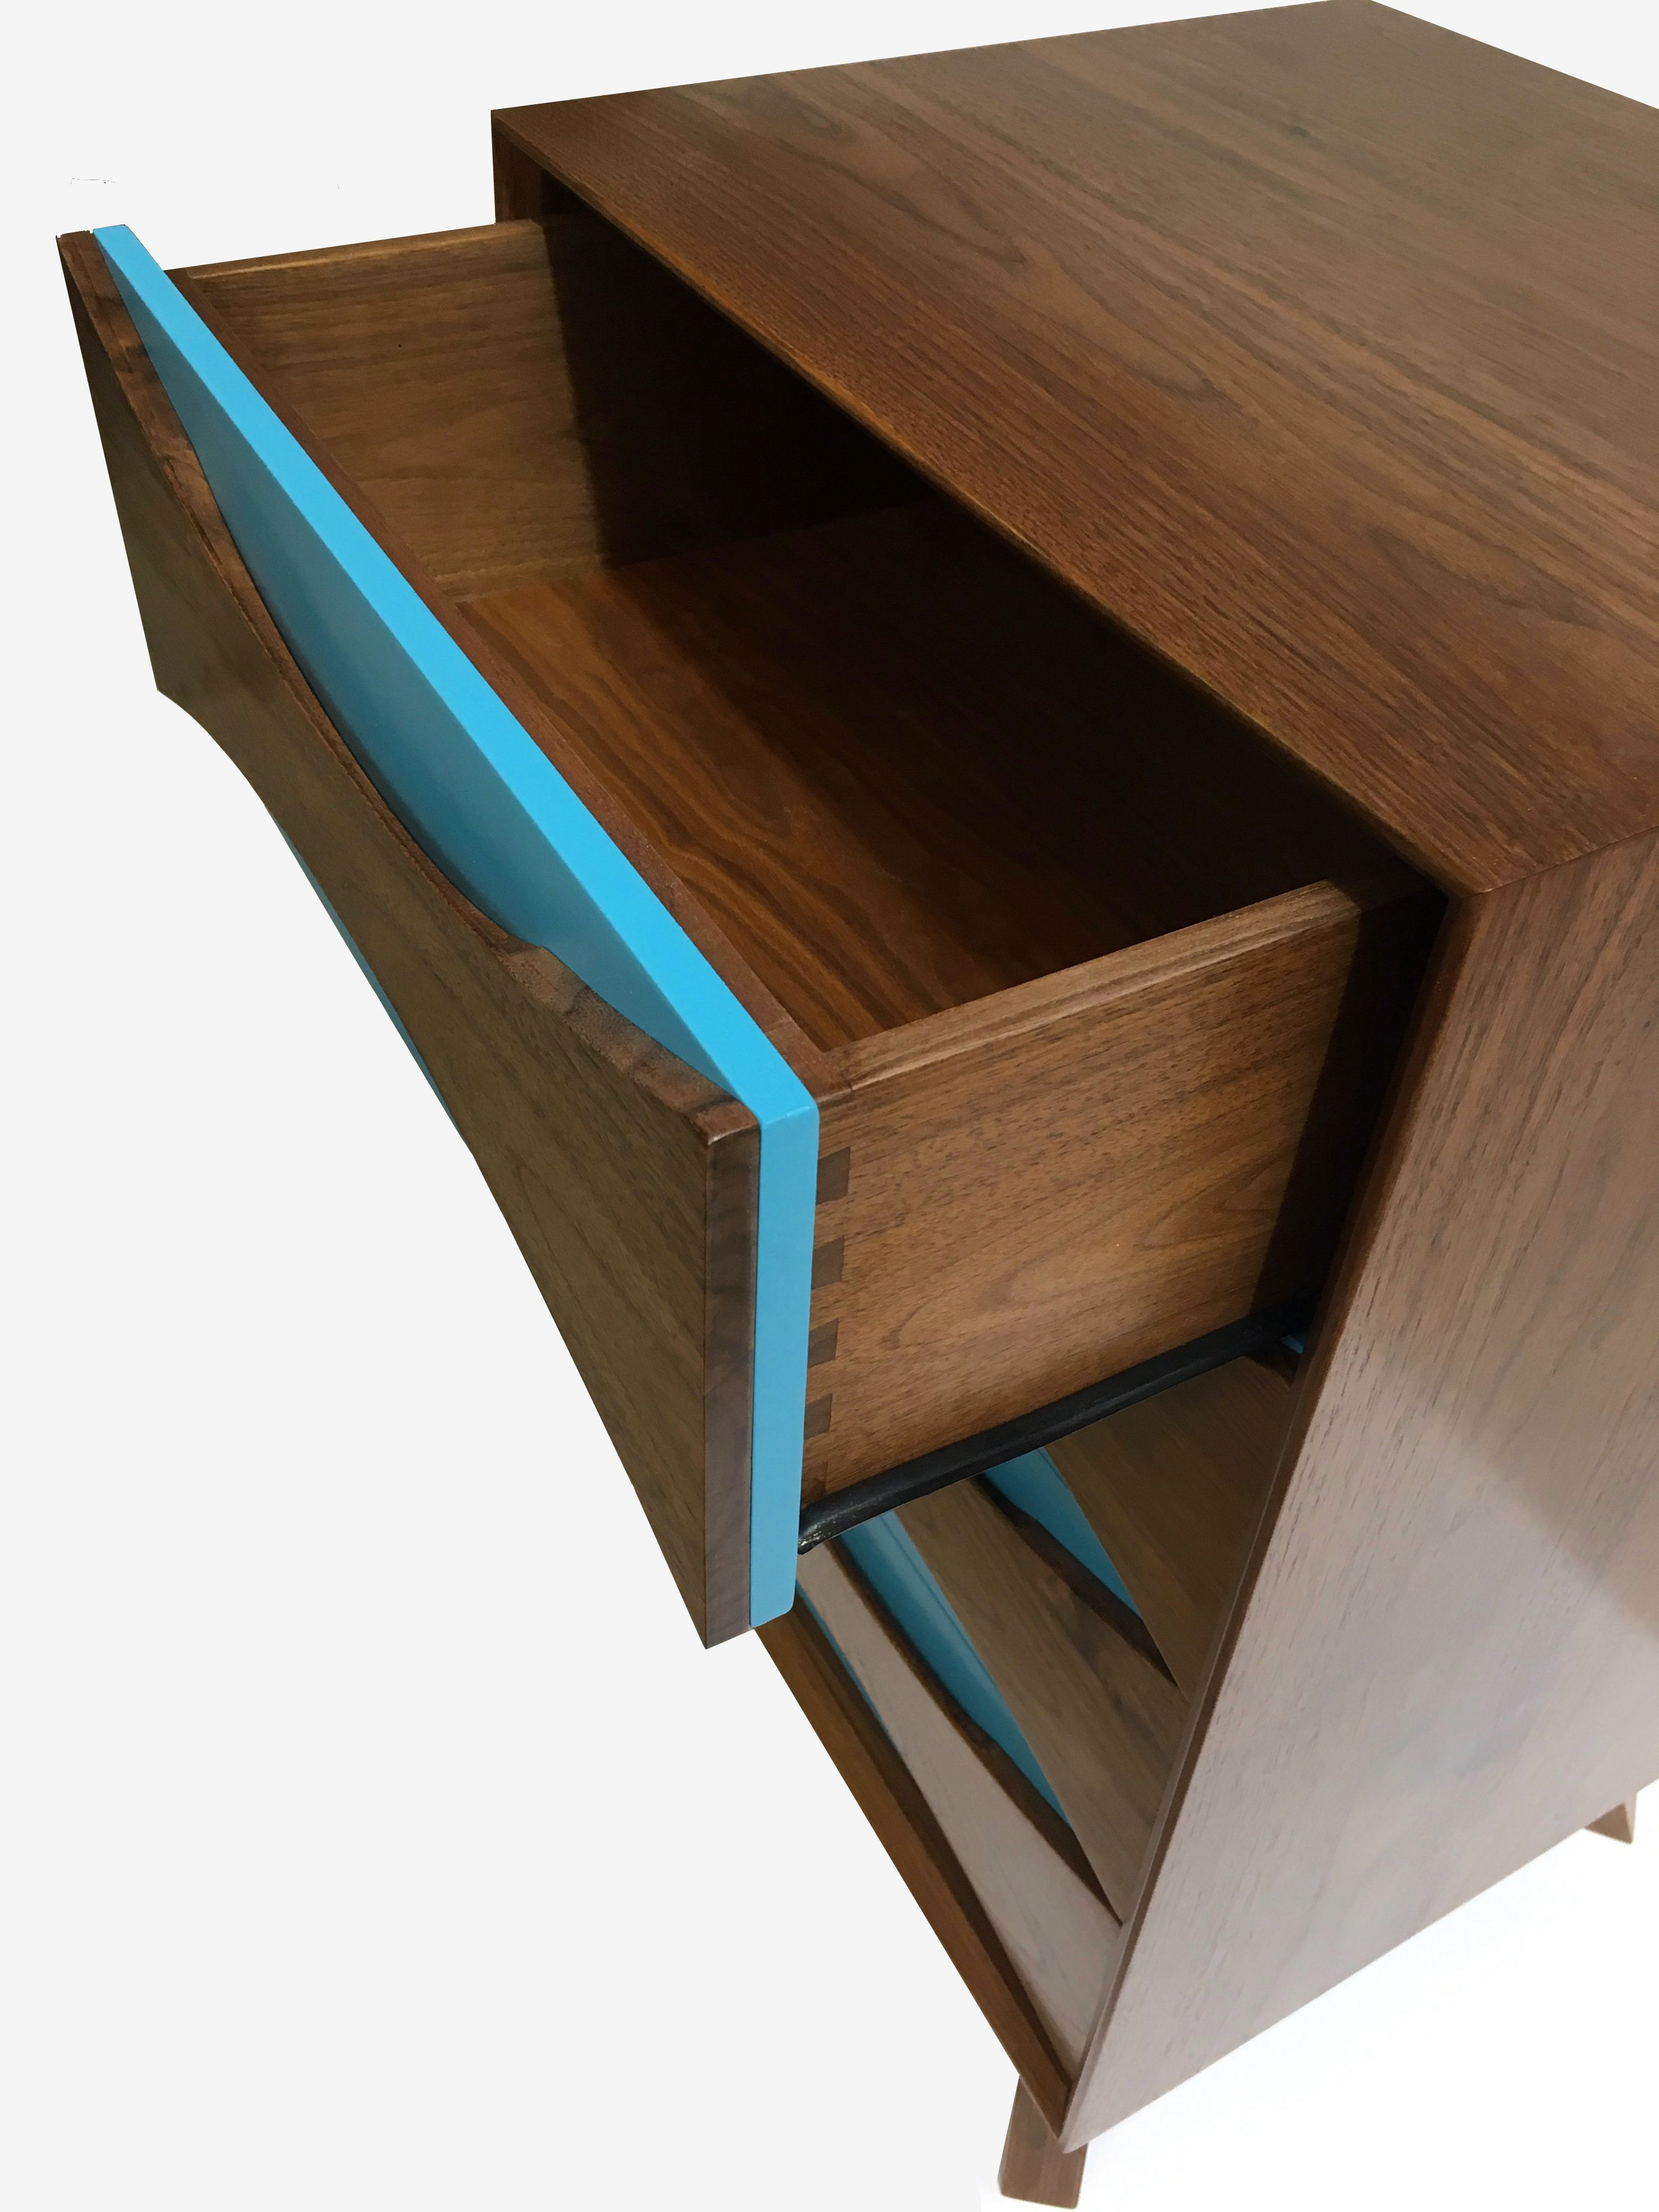 The Archer Four Cabinet From Tusk And Tail Design Is Full Of Mid Century Modern Style Solid Walnut Construction With Plenty Storage